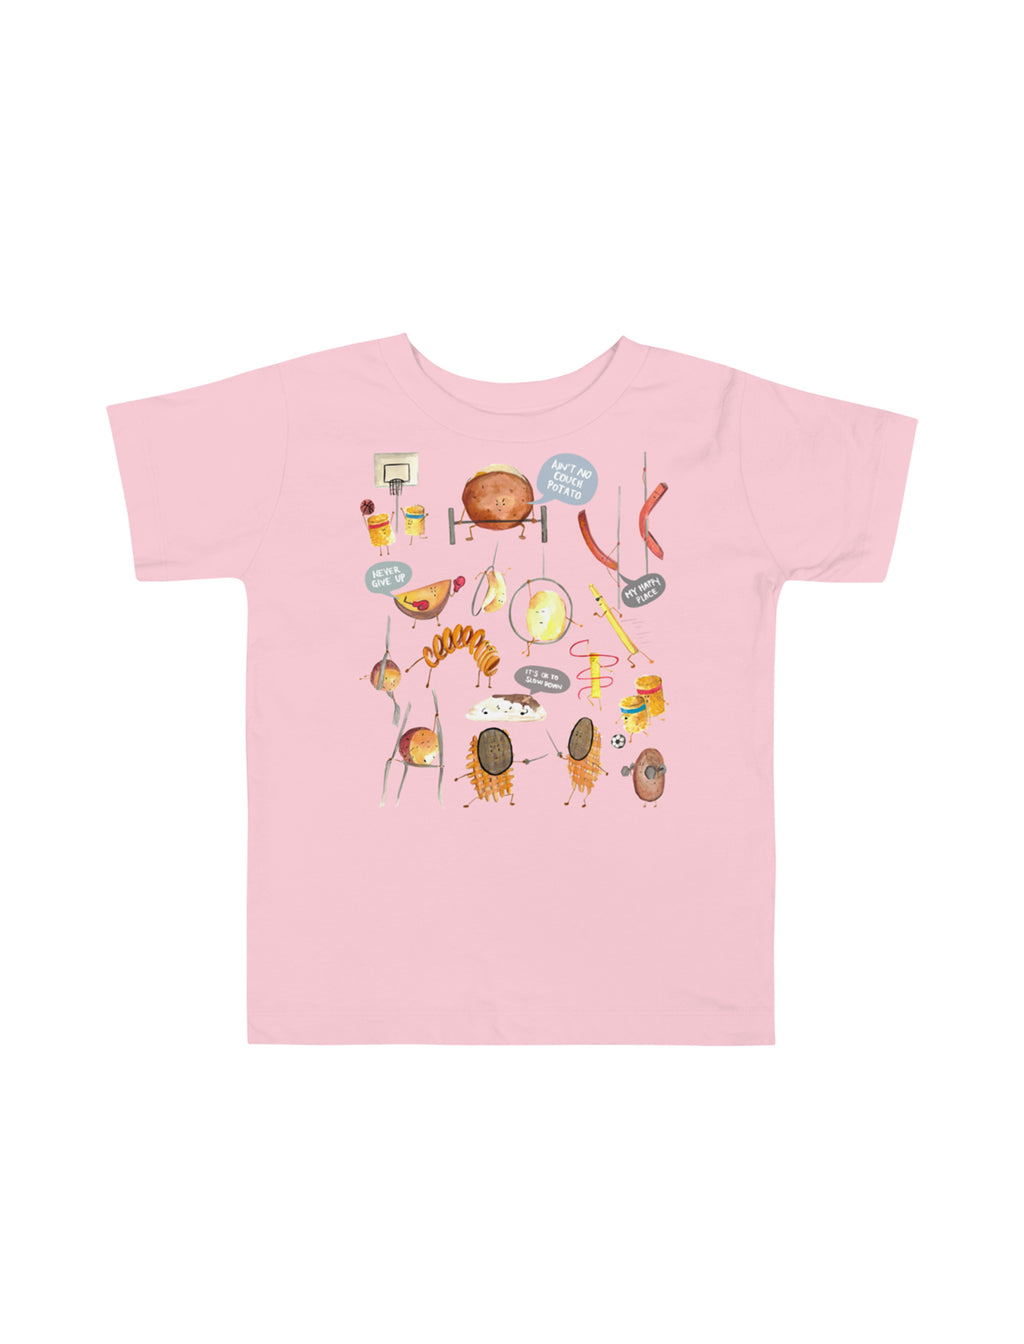 Potatoes Toddler Short Sleeve T-Shirt